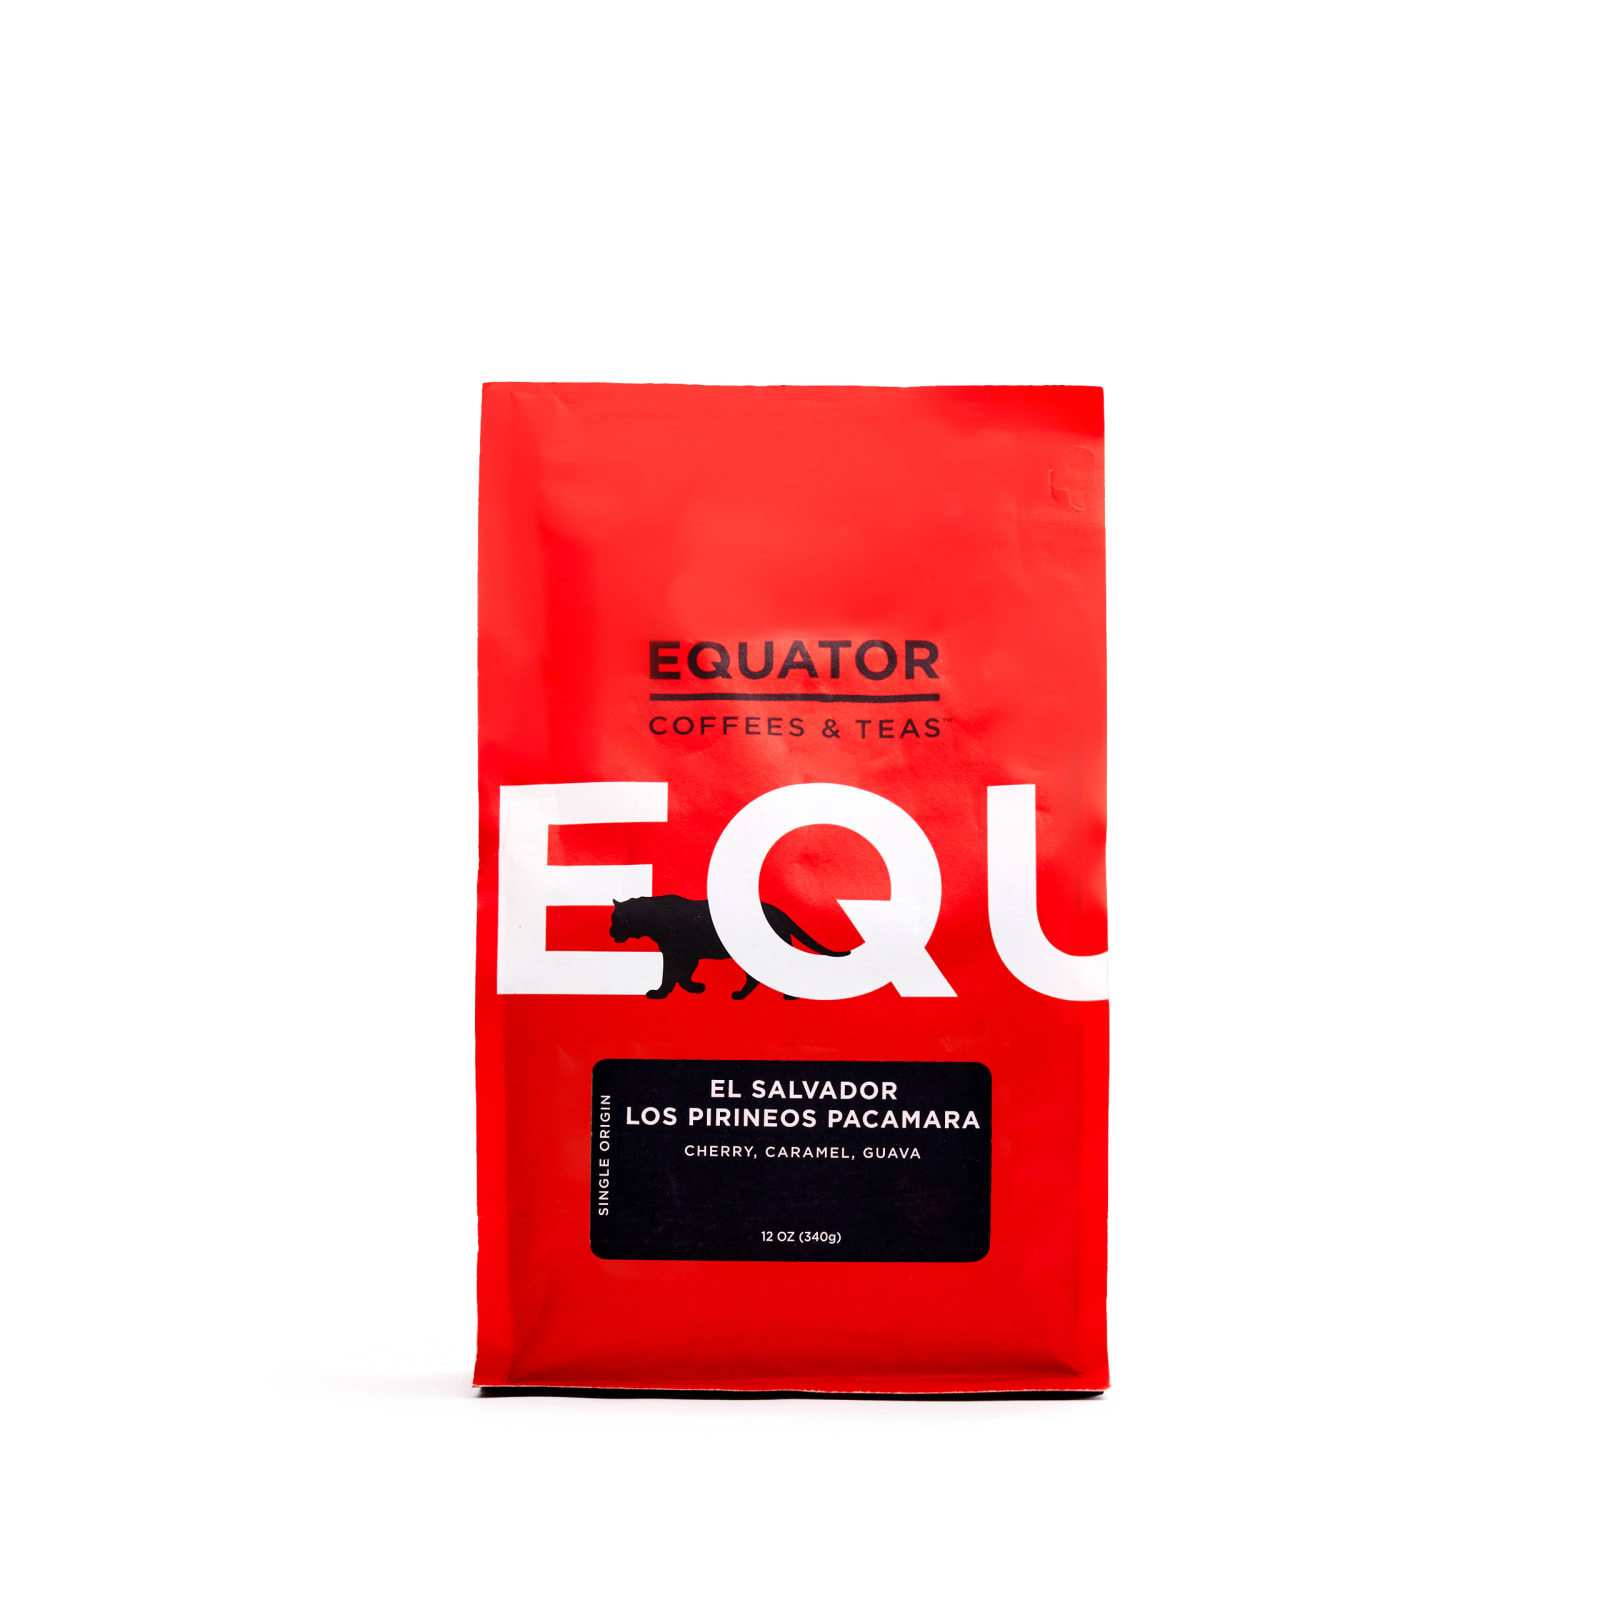 equator el salvador los pirineos pacamara coffee bag